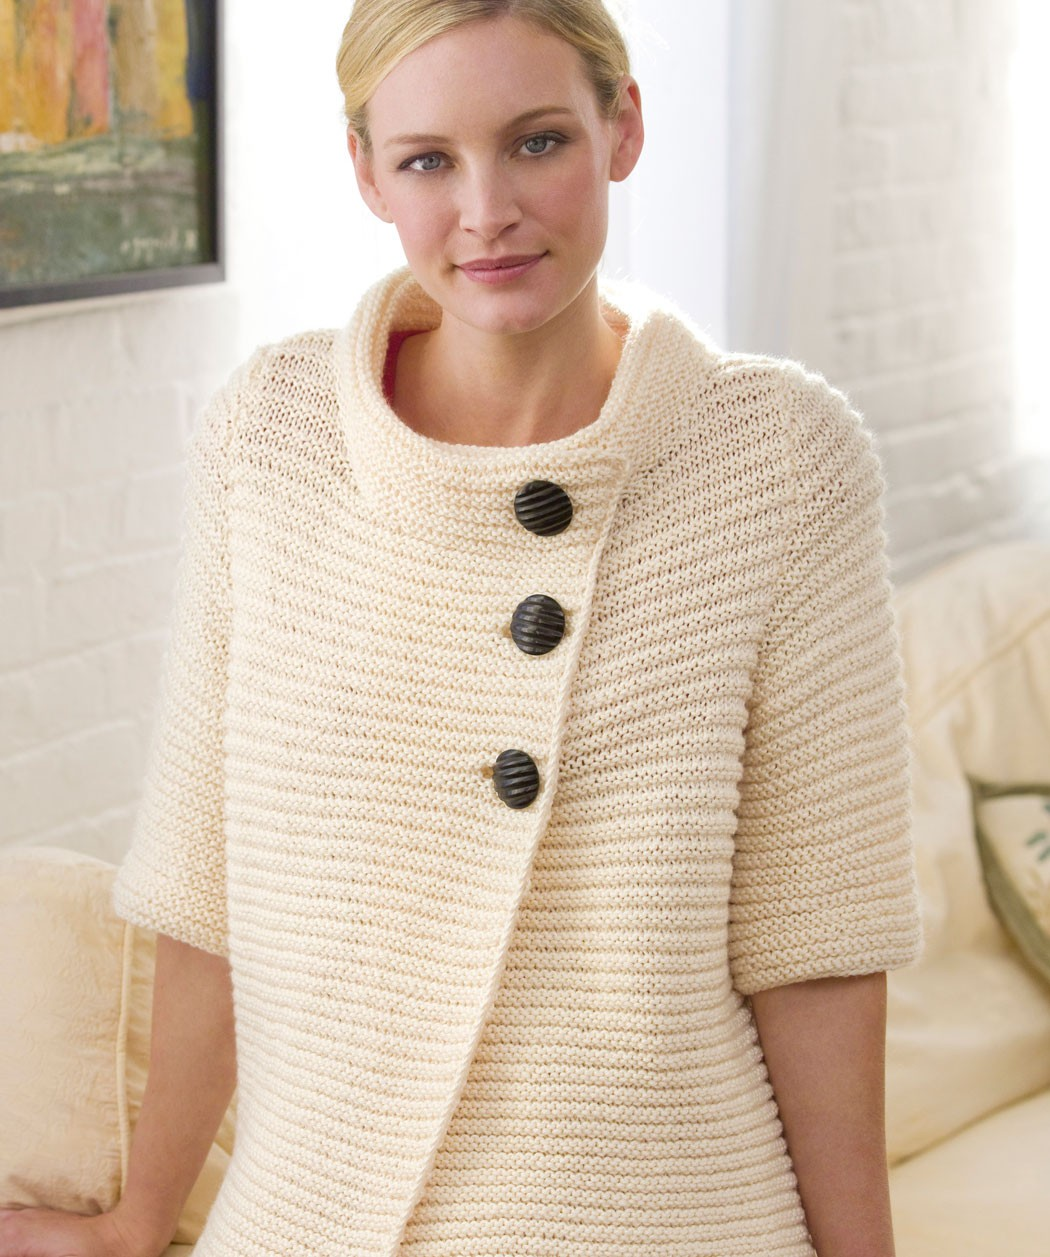 Knitting Patterns For Cardigan Sweaters : Knitted Sweater Patterns for Women A Knitting Blog